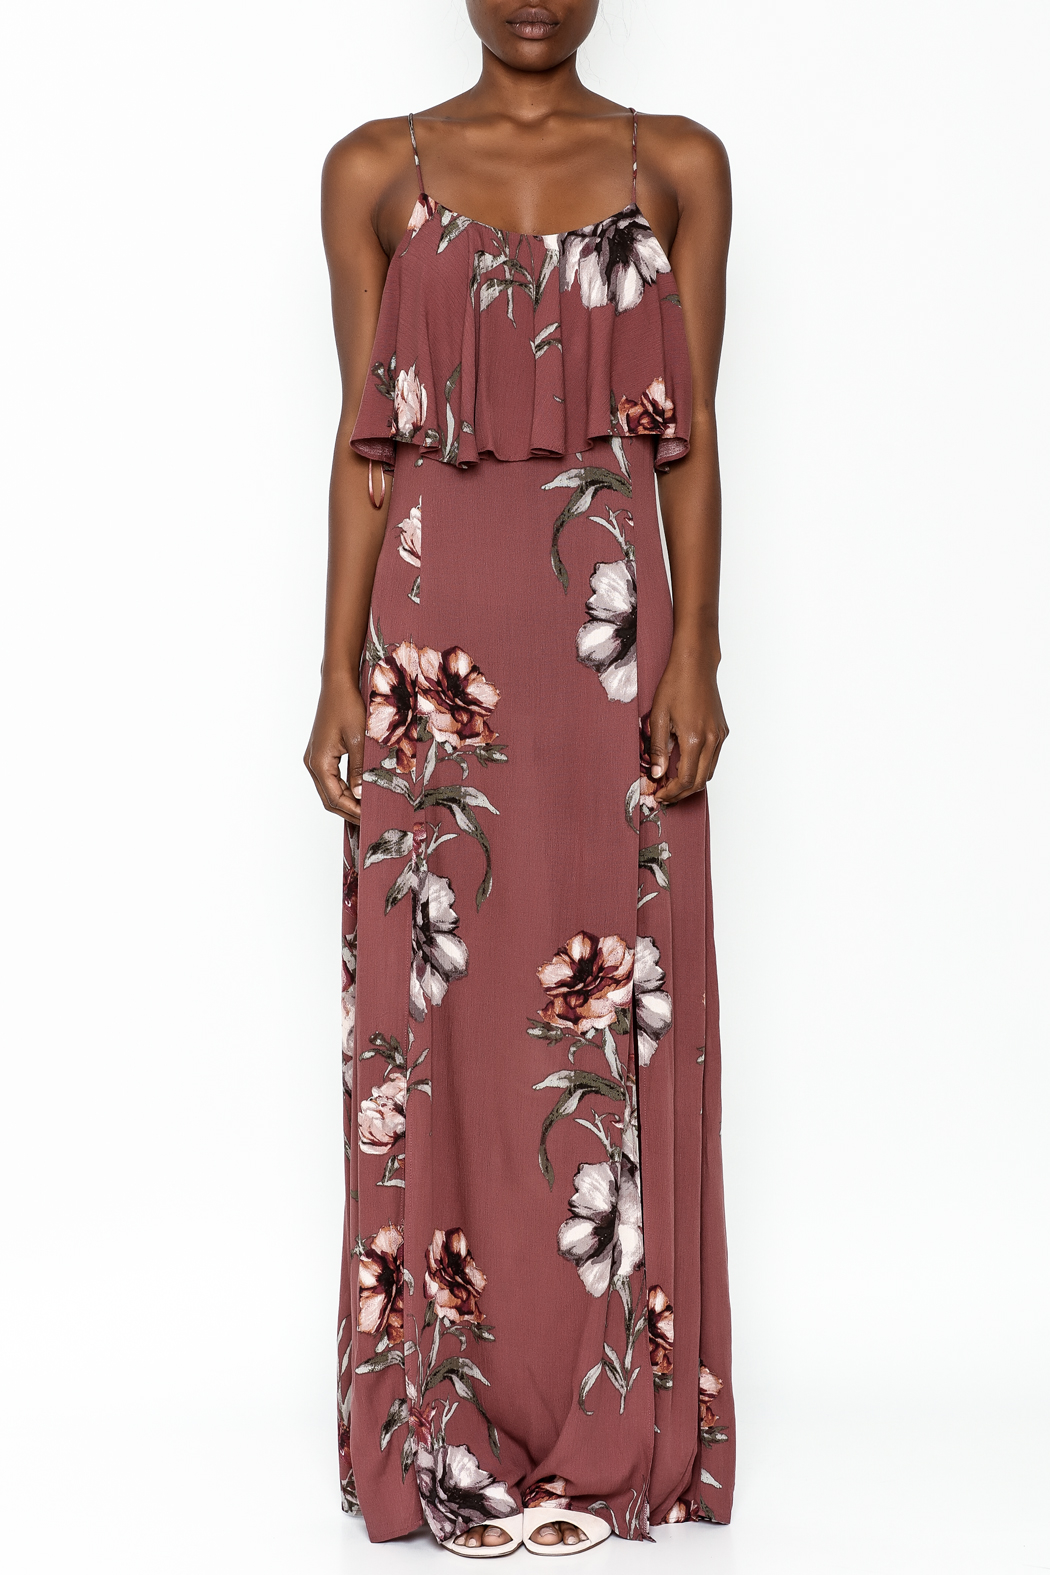 y&i clothing boutique Blush Floral Maxi Dress - Main Image